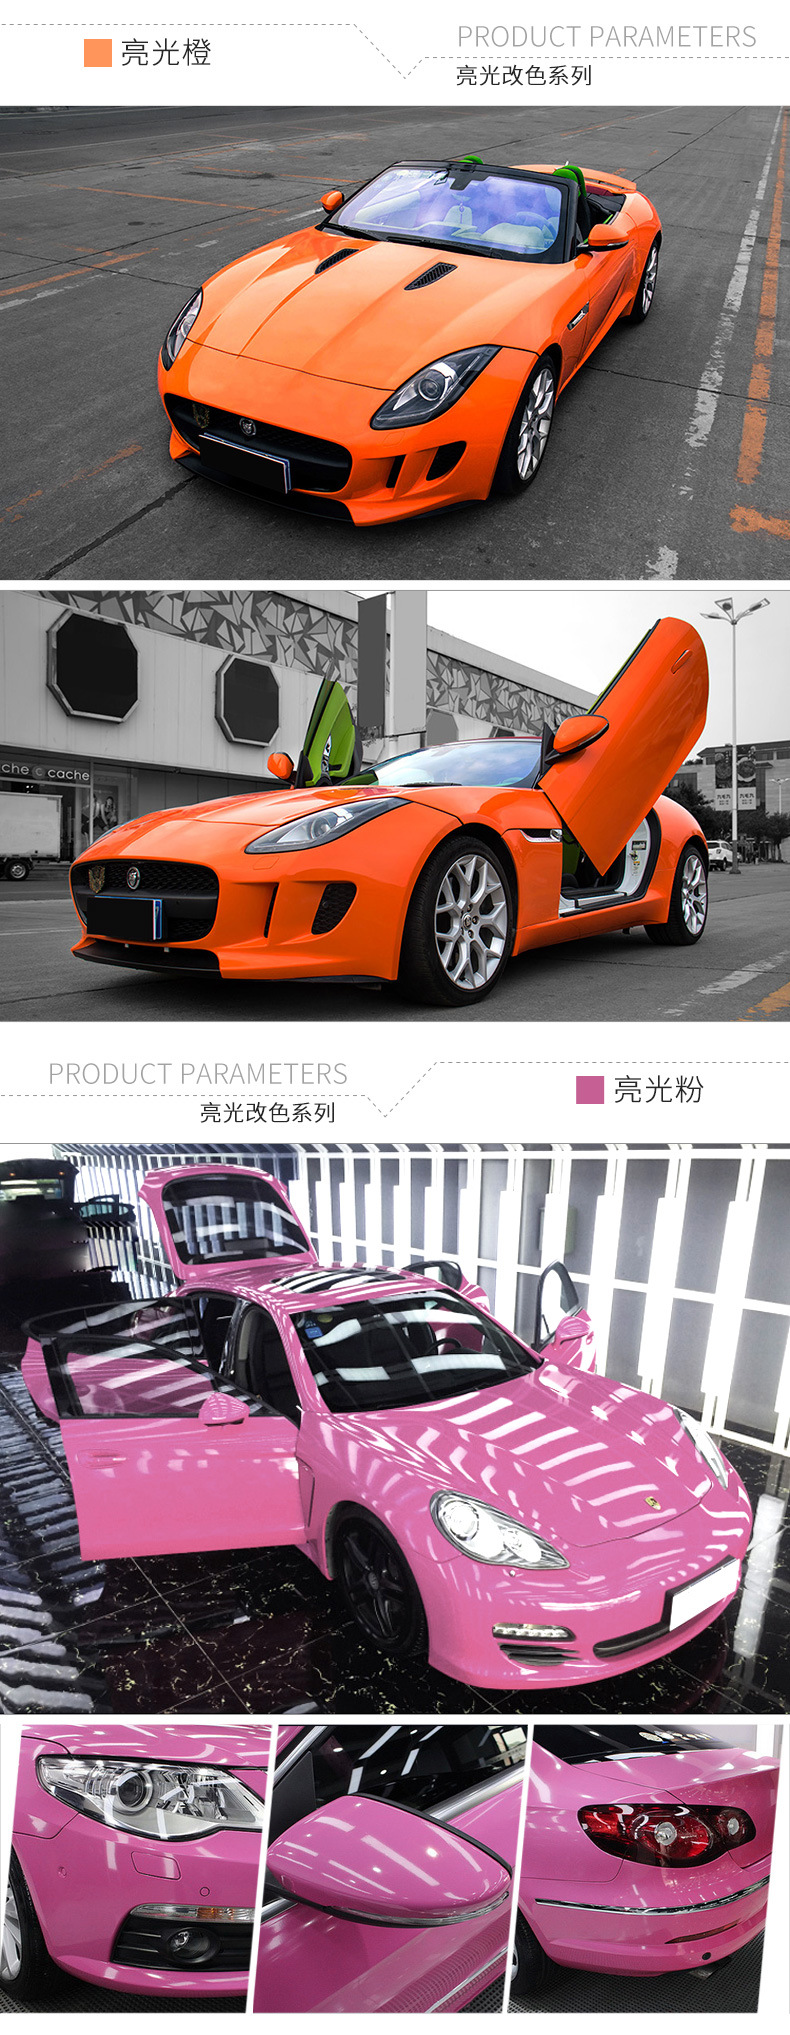 2018 3D pvc multi color shinning car color change nivyl protection wrap film 152cm x18m